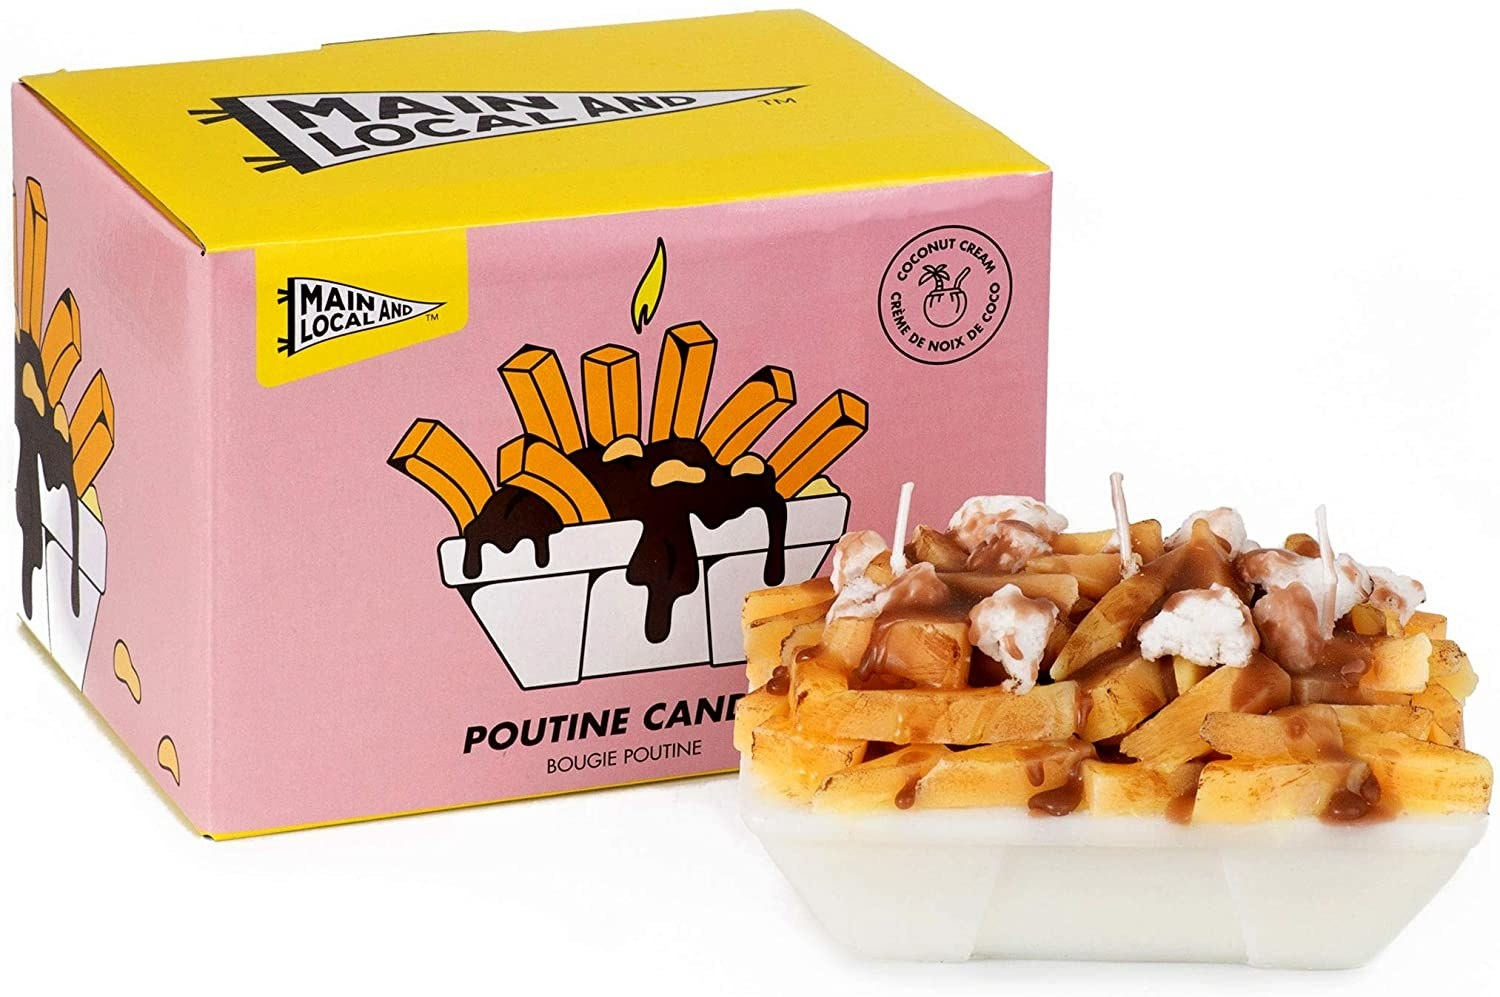 A small candle in the shape of a box filled with poutine